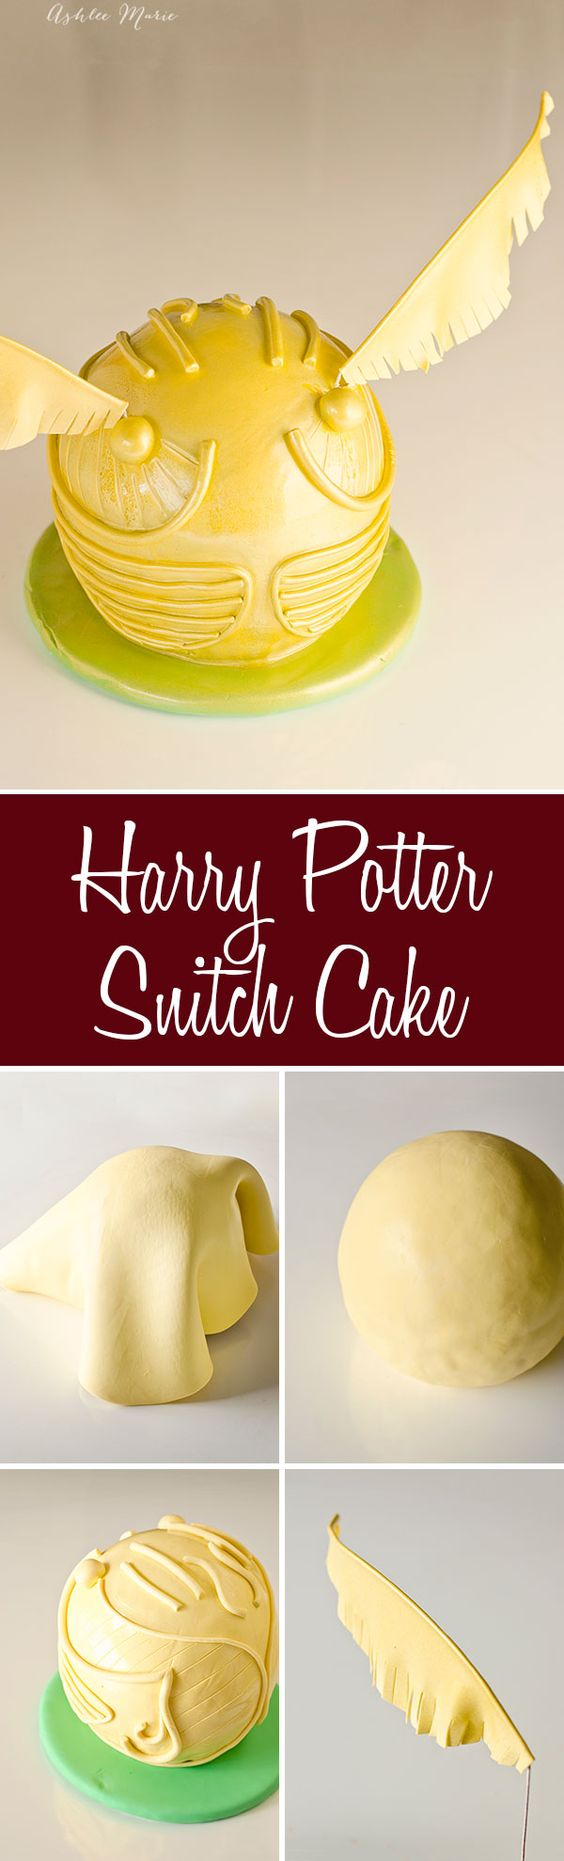 a full tutorial for how to make your own Harry Potter snitch cake